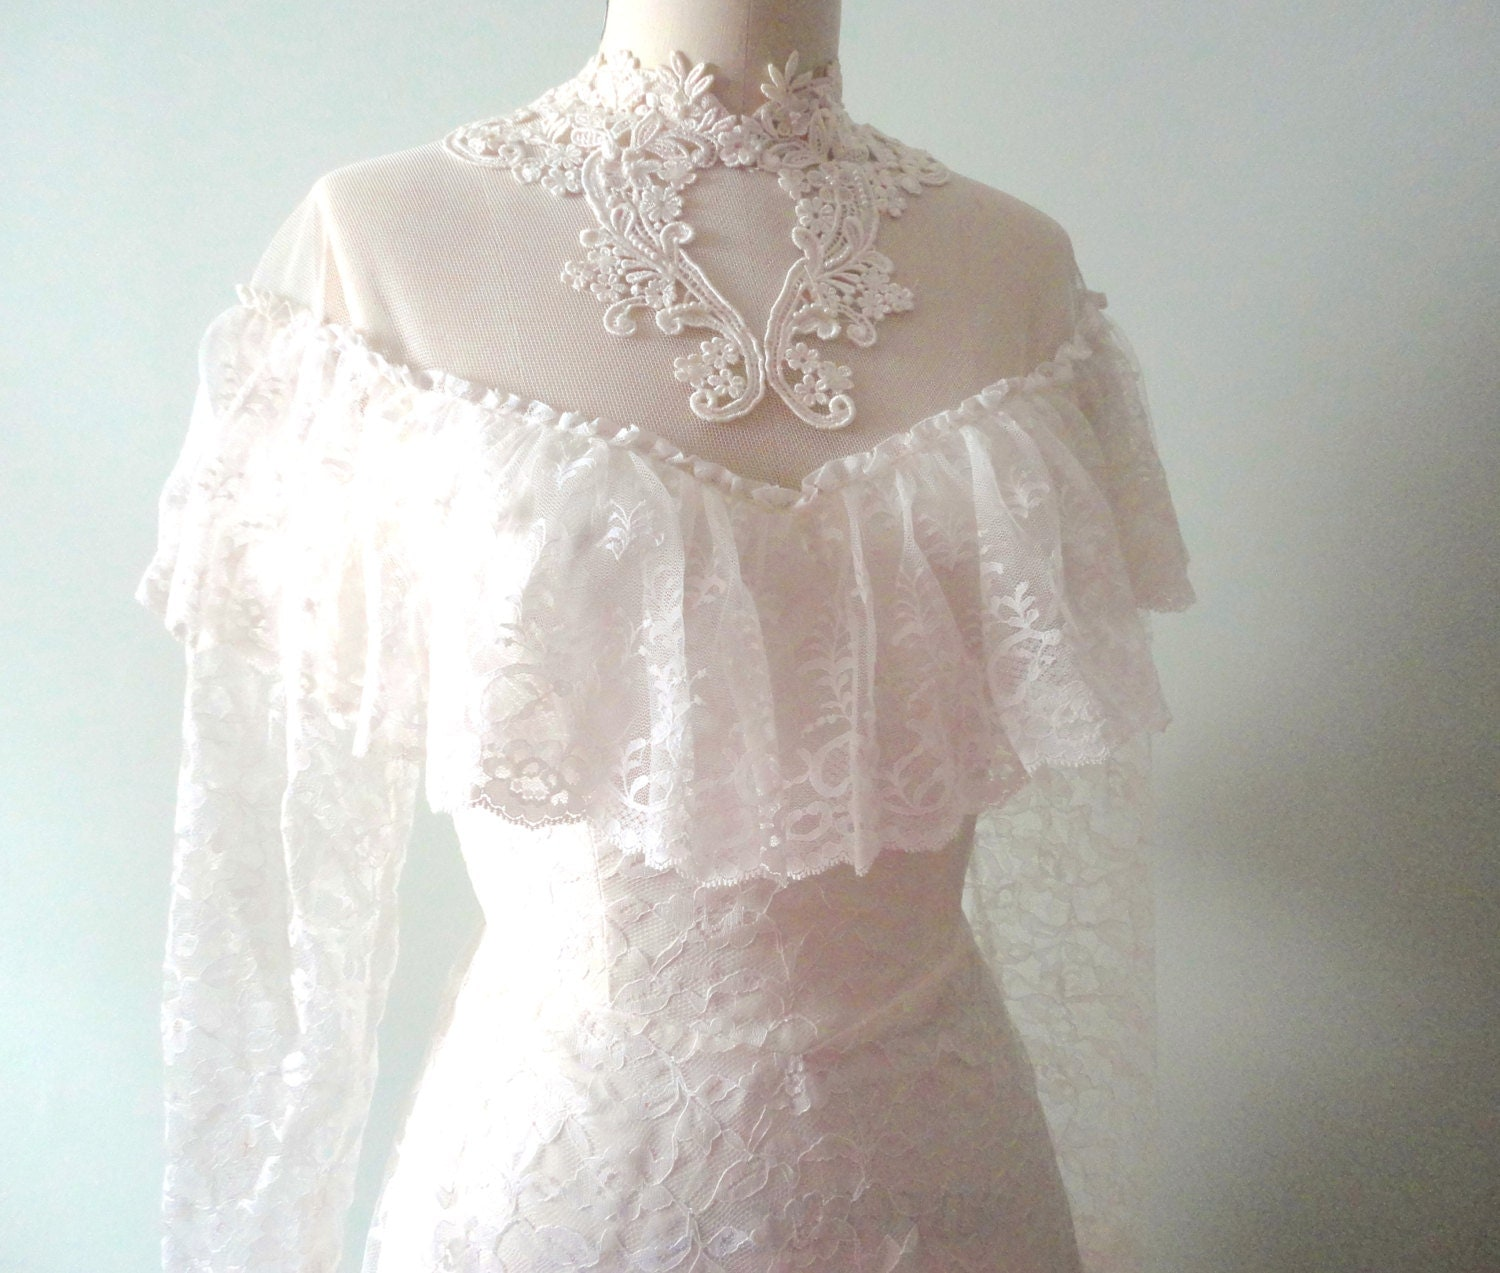 Vintage wedding dress chantilly lace classic wedding for Chantilly lace wedding dress